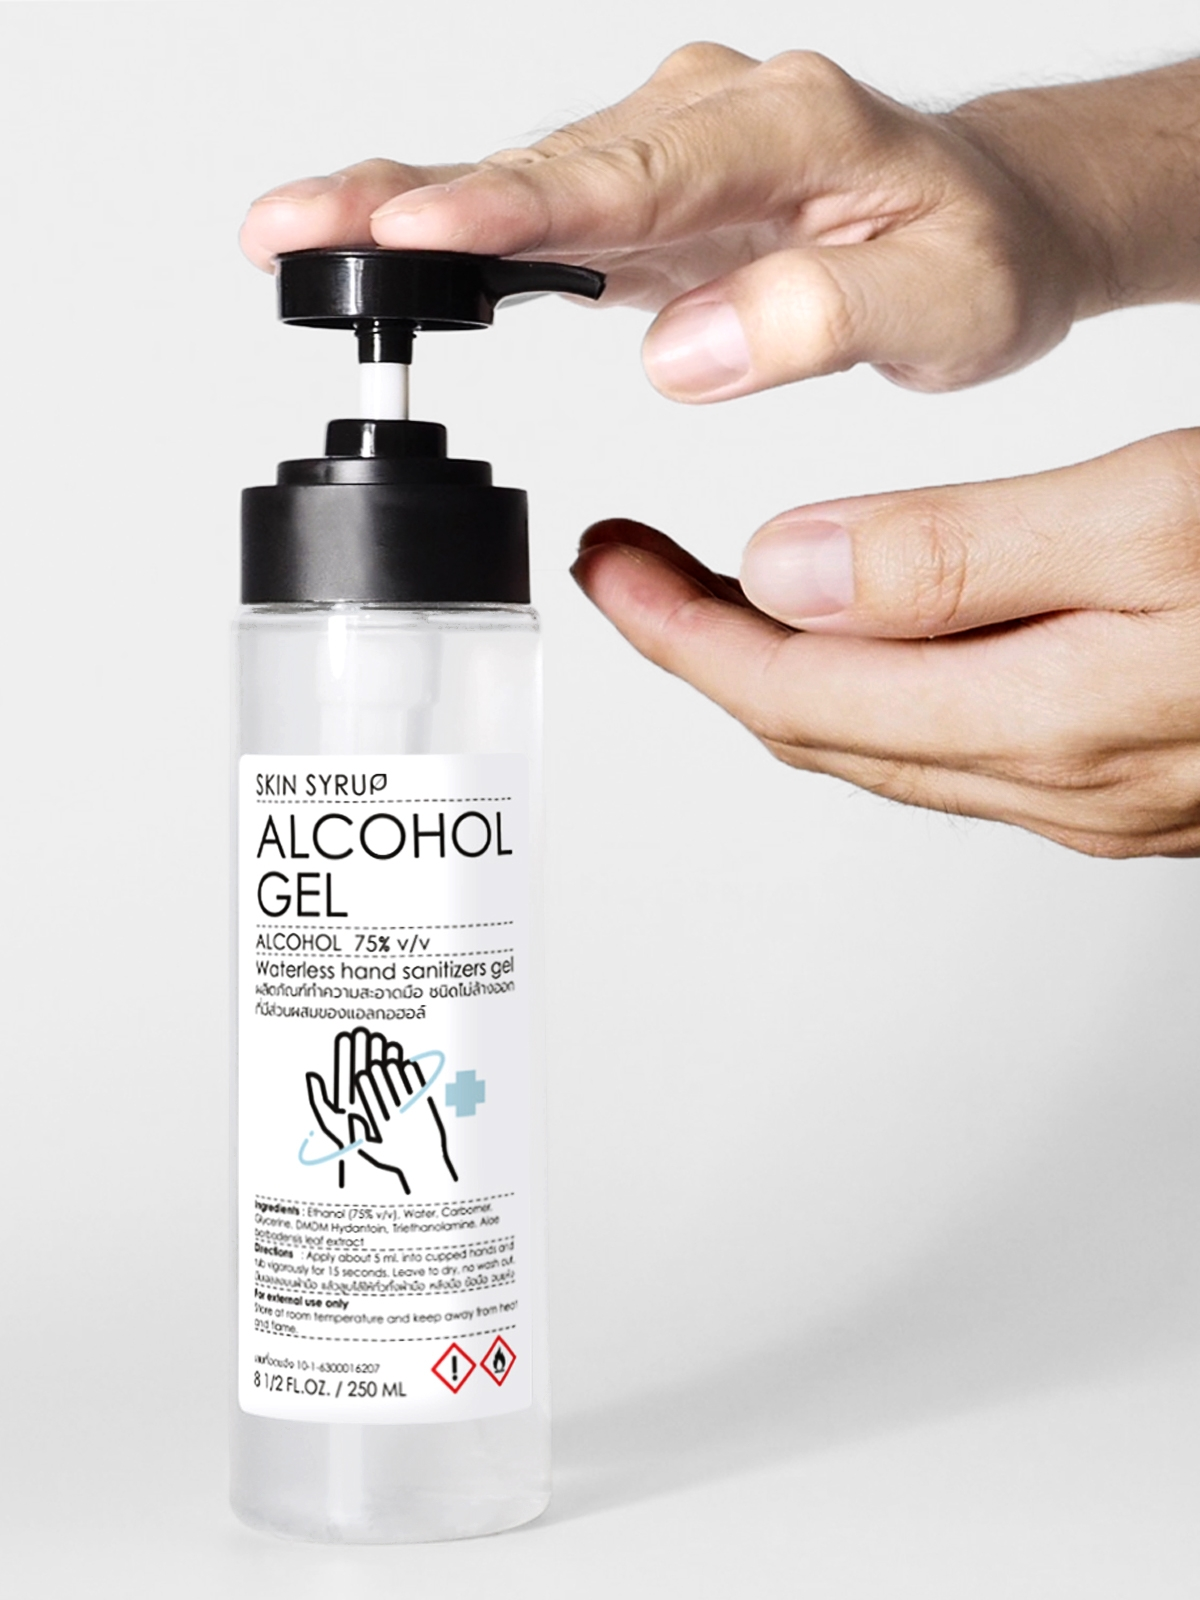 SKIN SYRUP Alcohol Gel 250 ml Alcohol